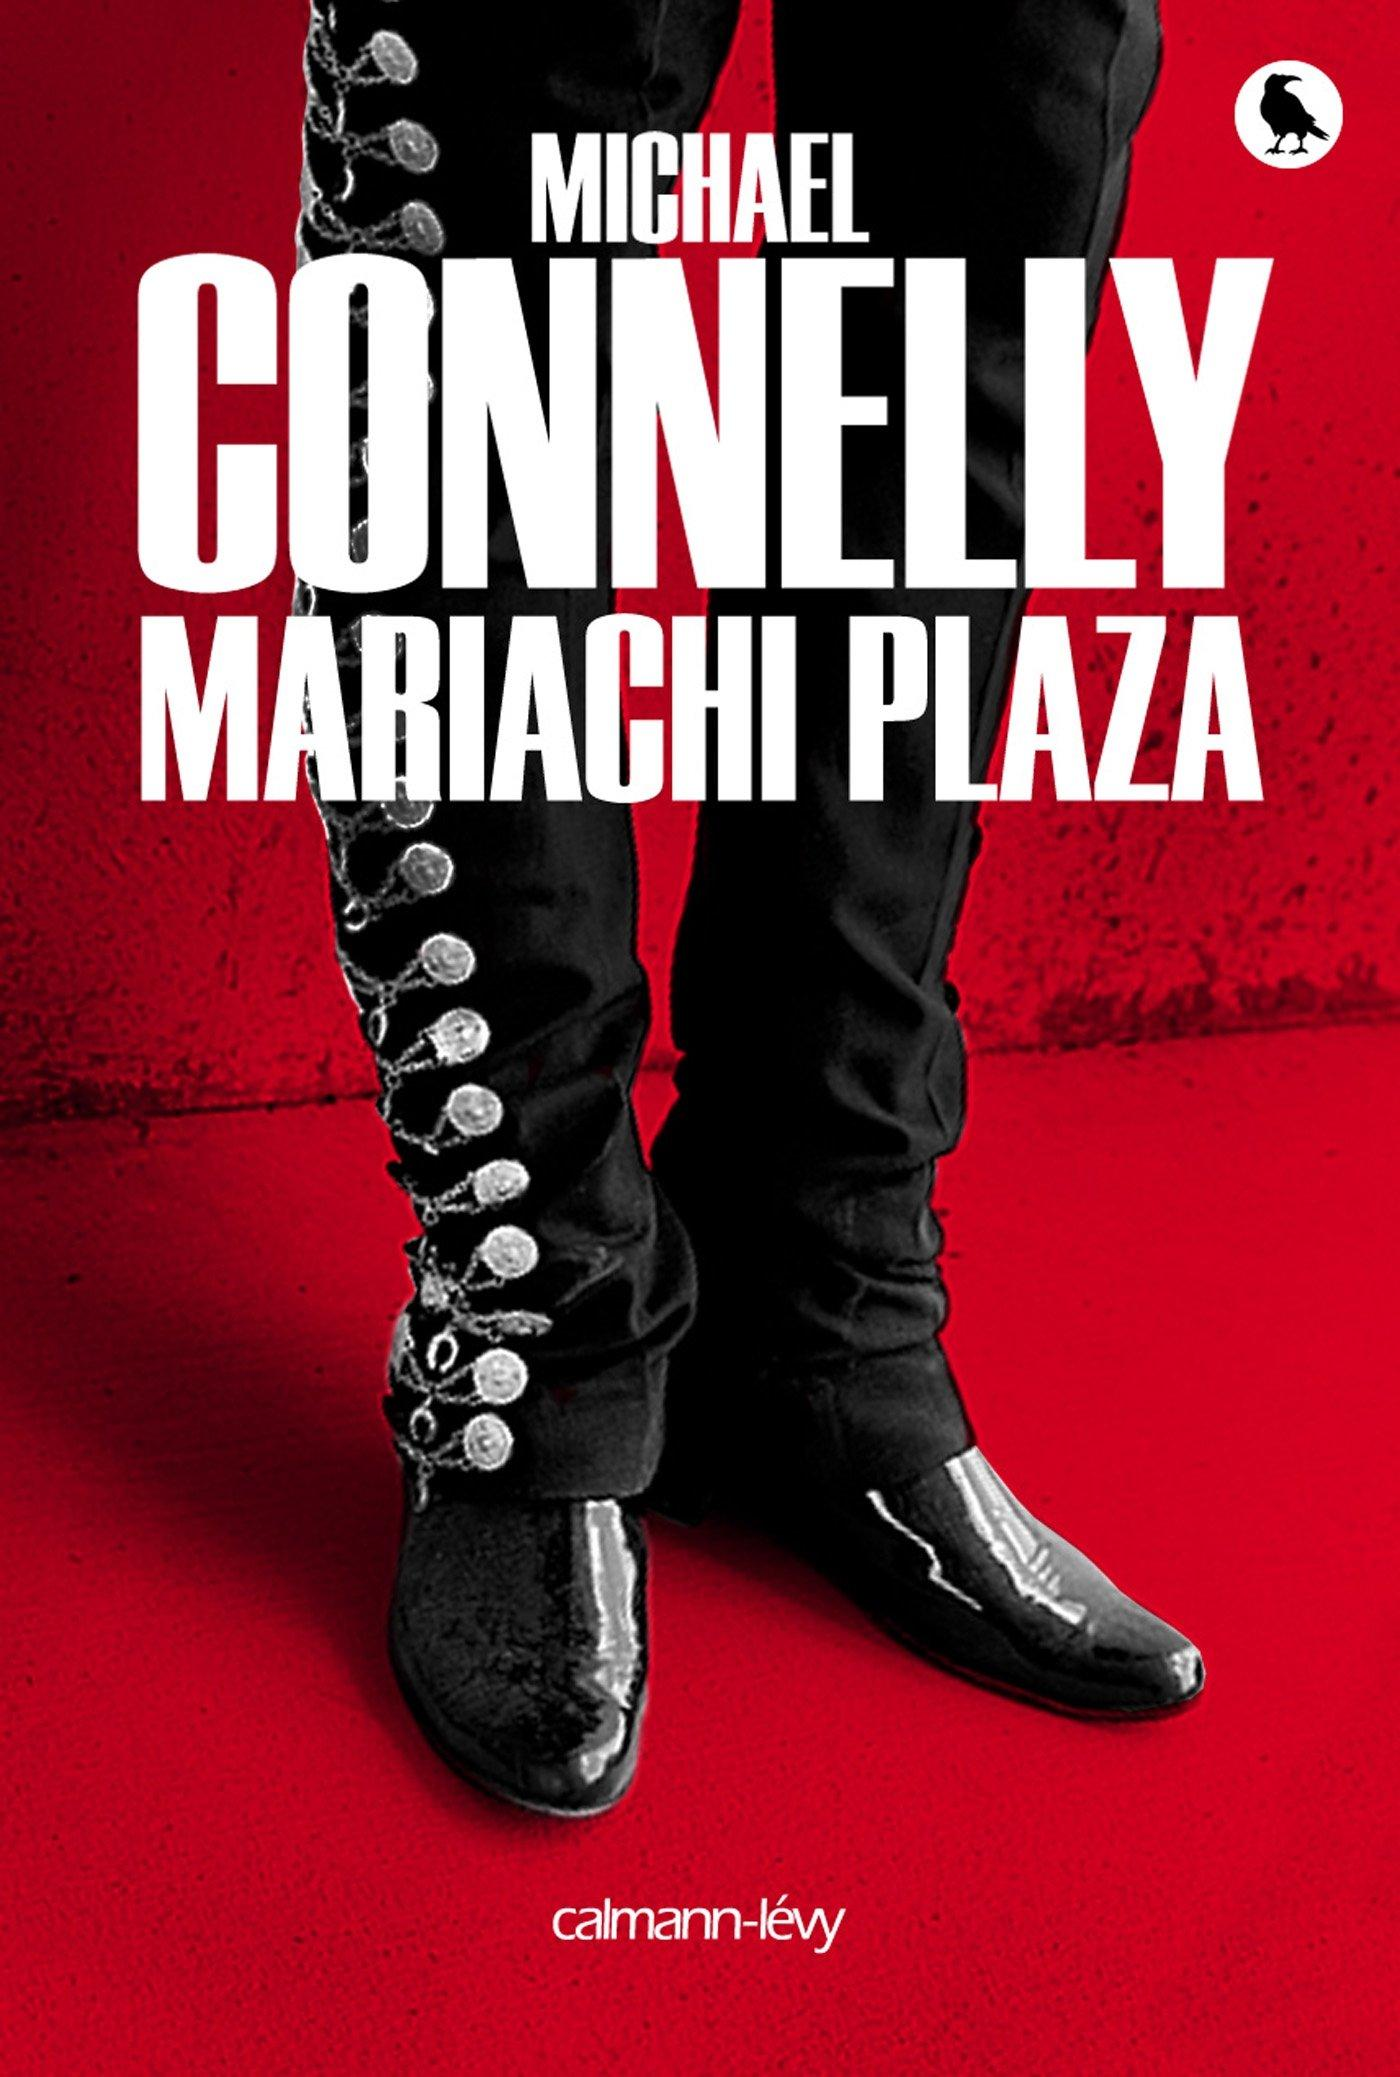 Vente Livre :                                    Mariachi plaza                                      - Michael Connelly